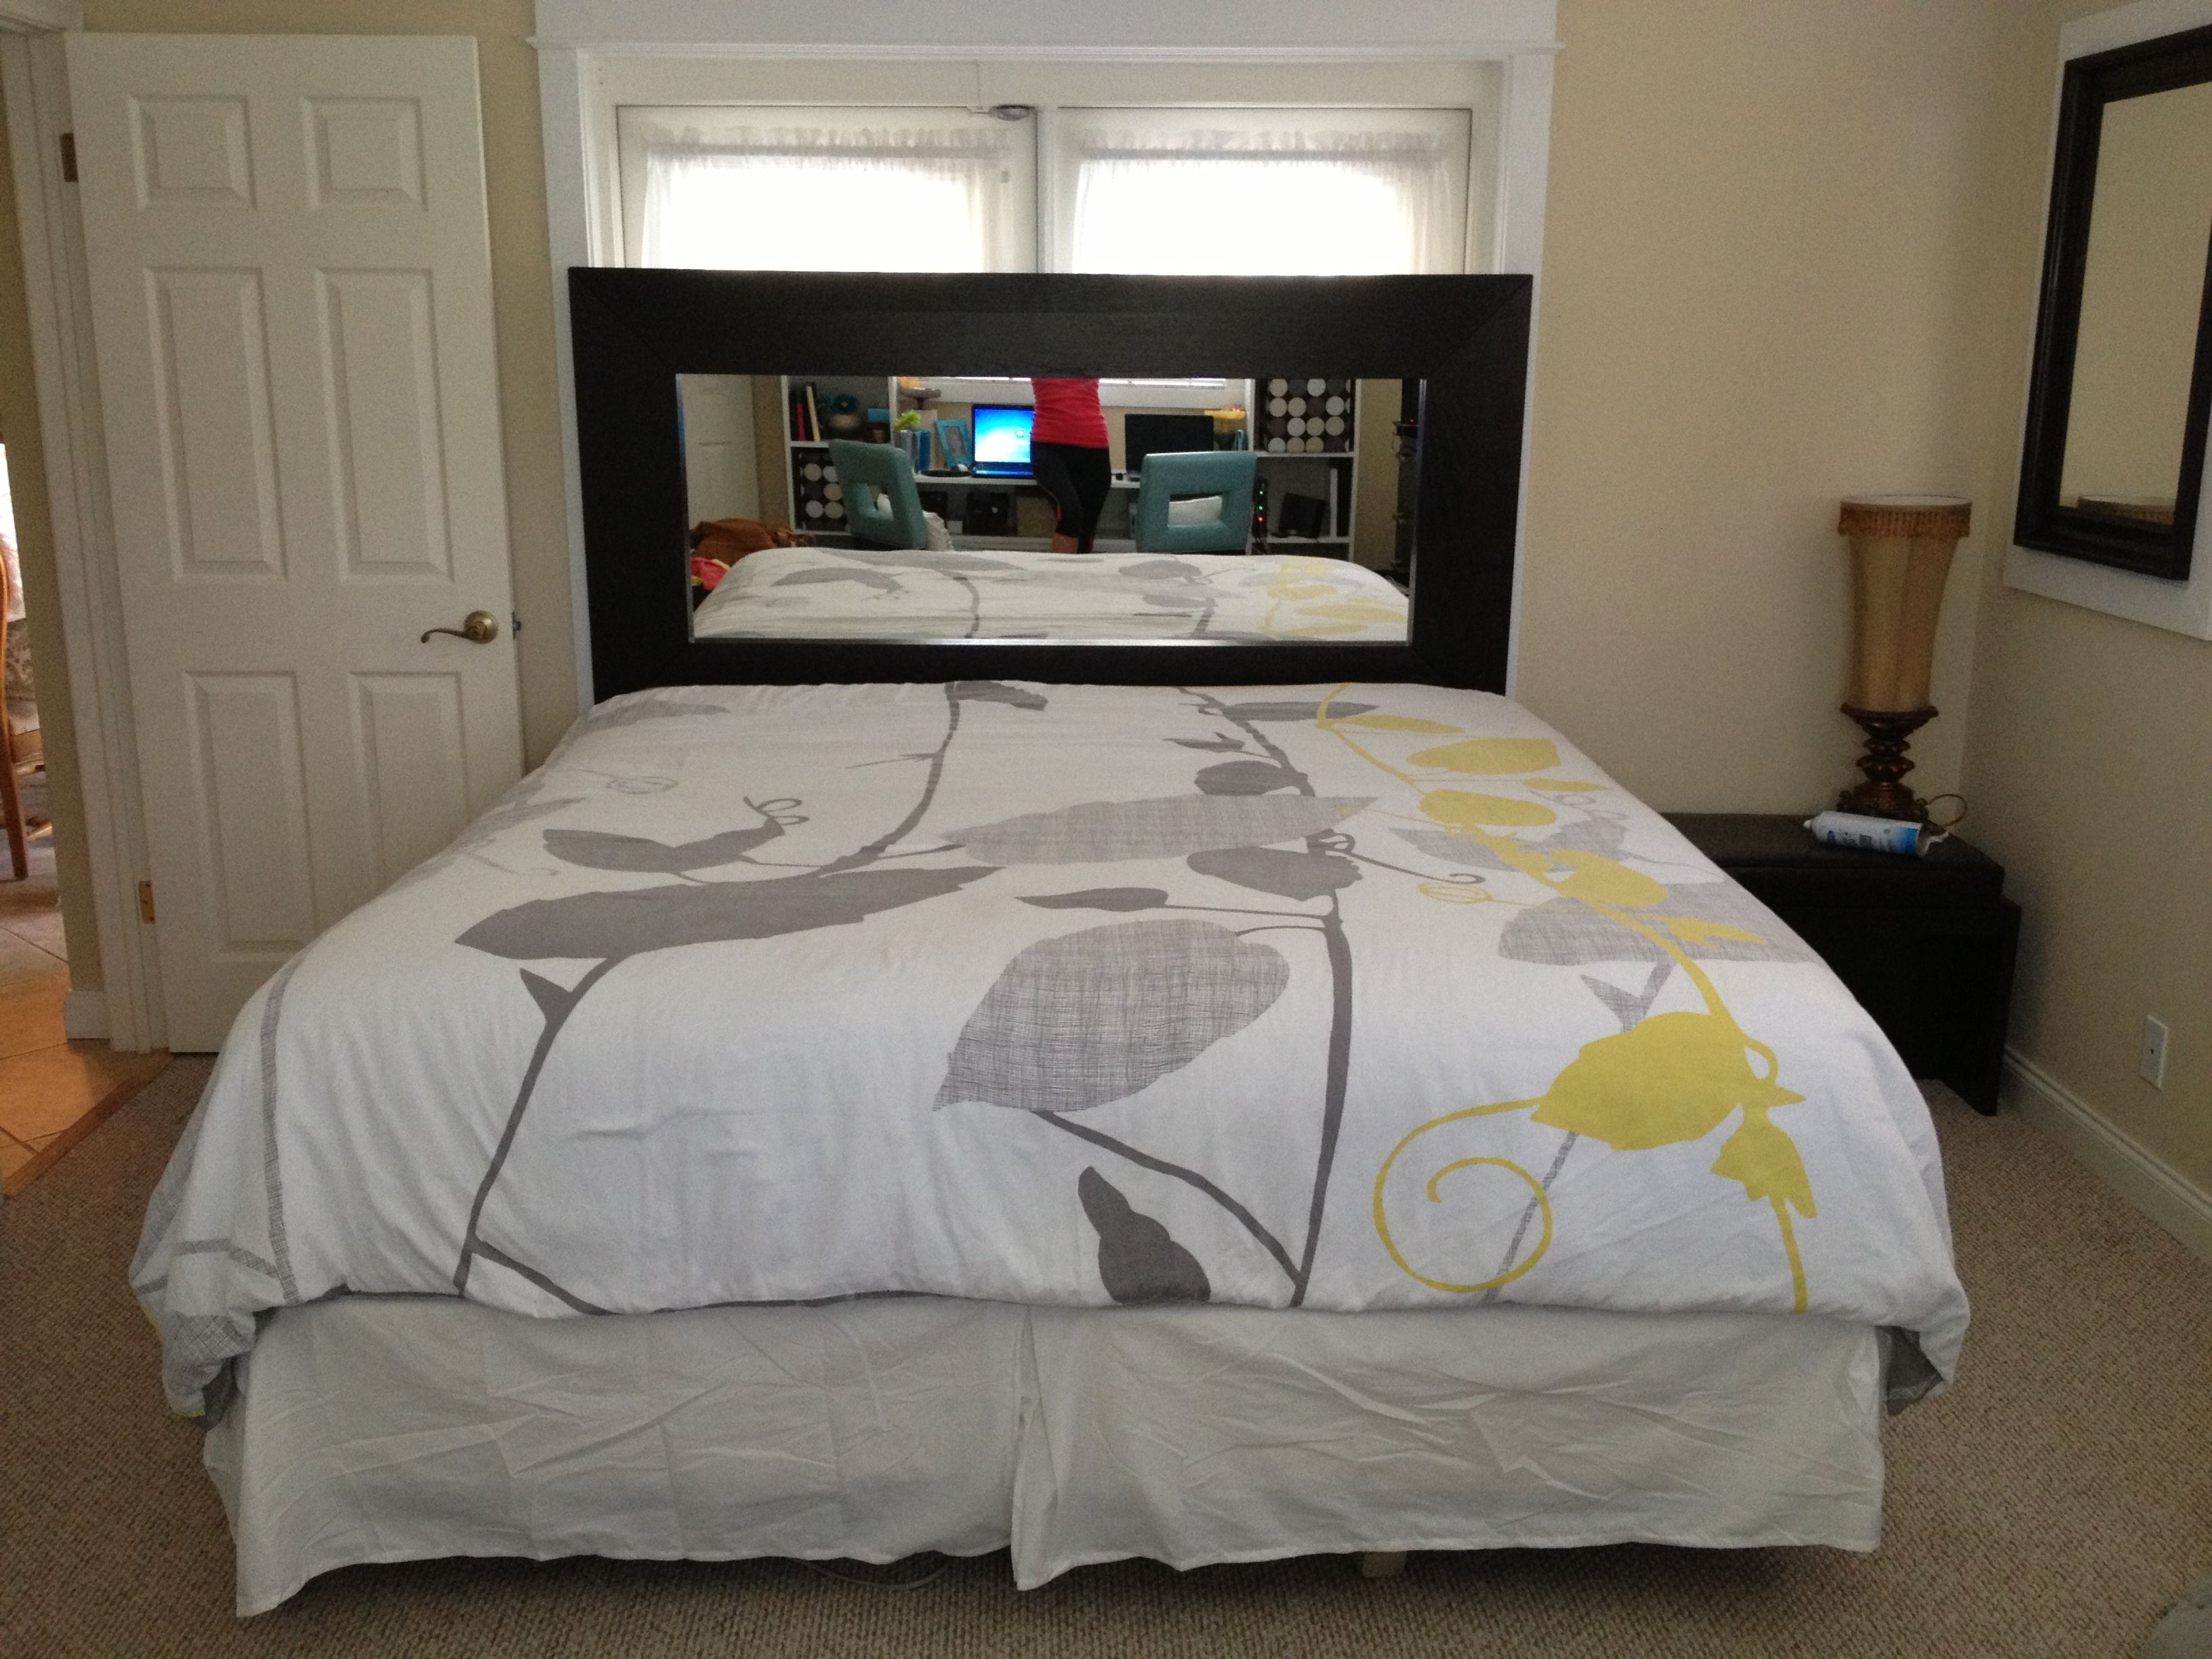 Diy headboard using large mirror from ikea for a king size - King size headboard ideas ...